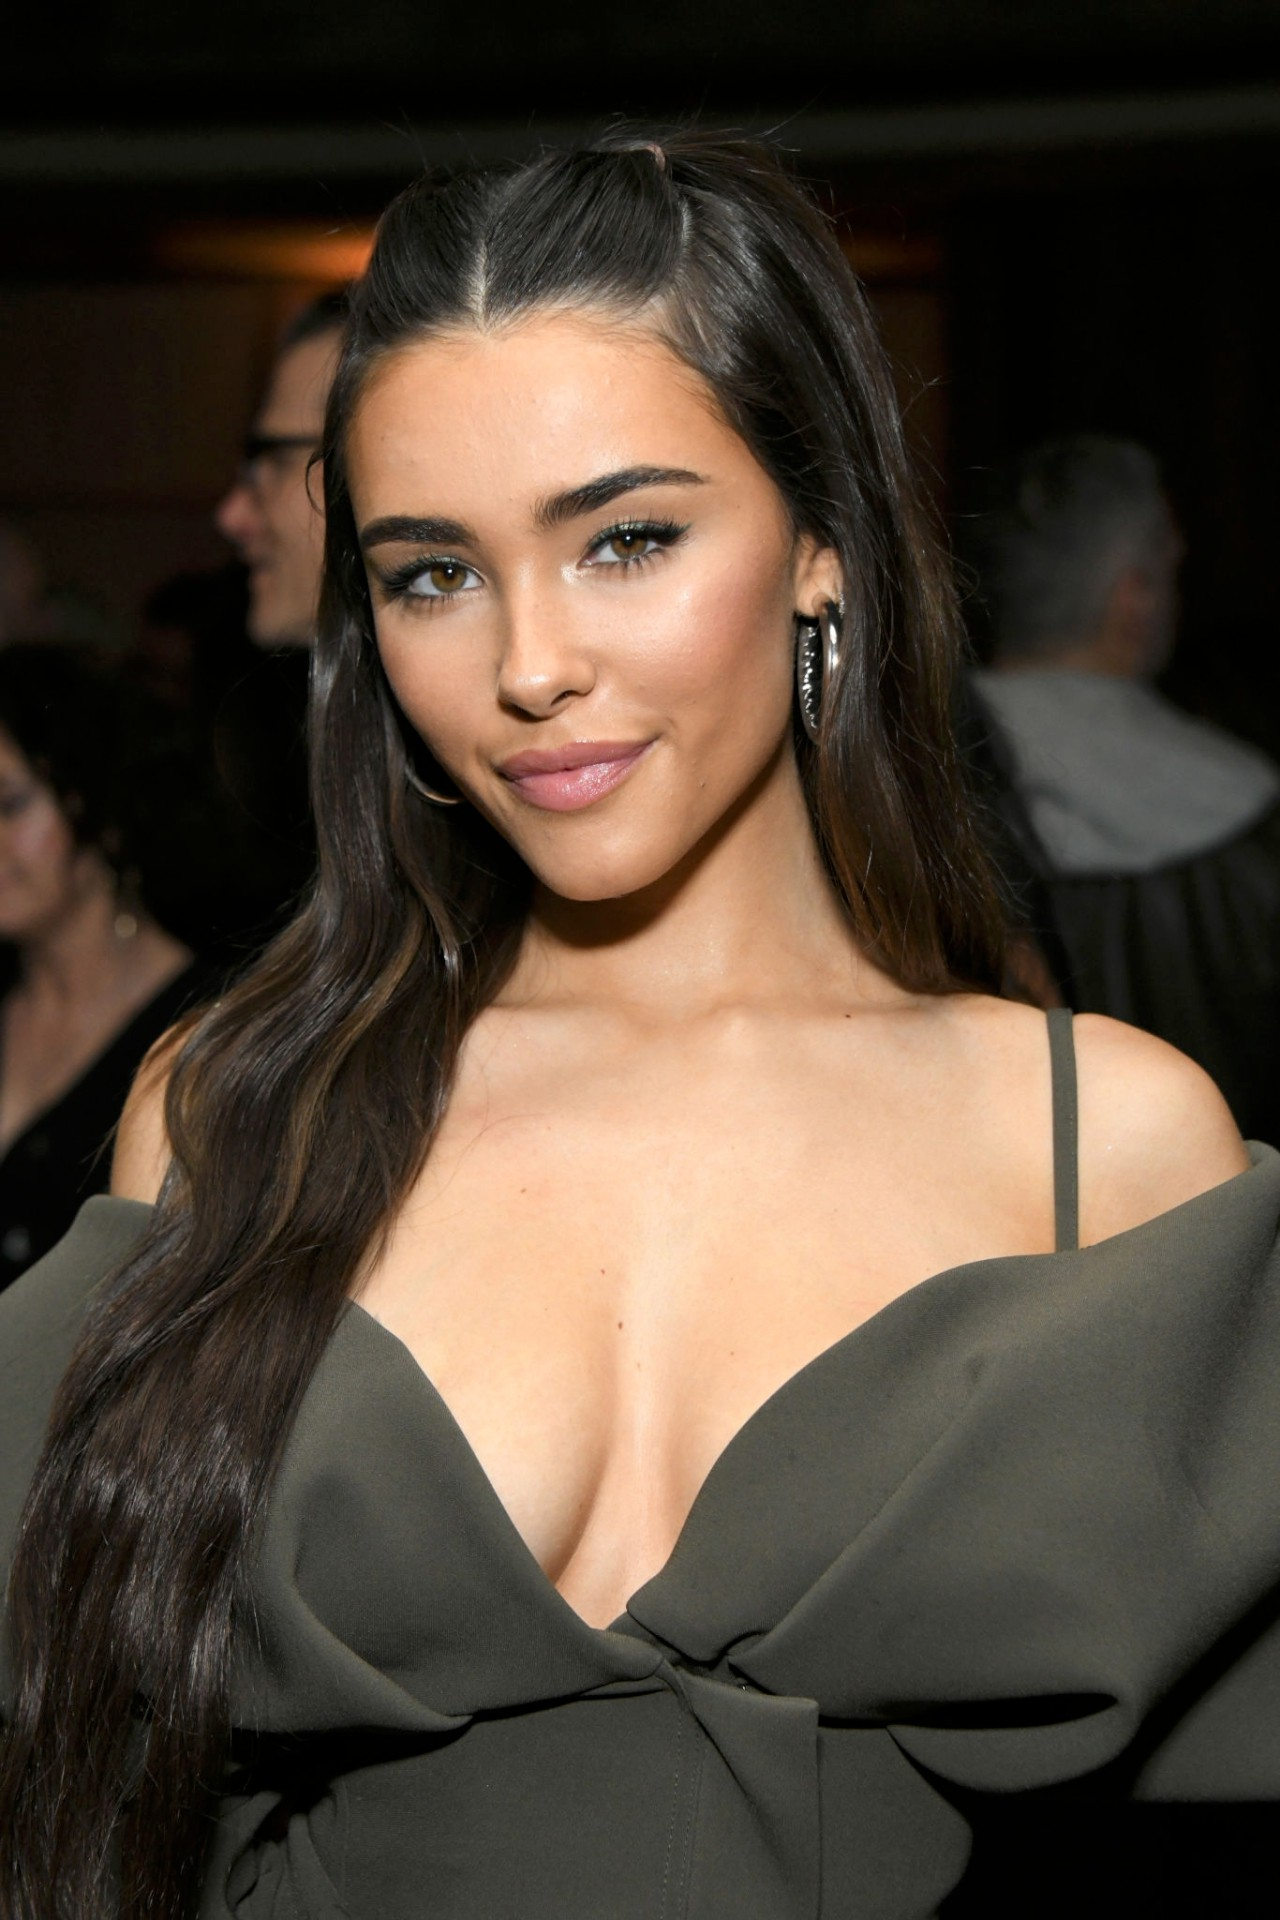 Madison Beer - Big Cleavage And Sexy Legs At Republic Records Grammy After Party In -2056